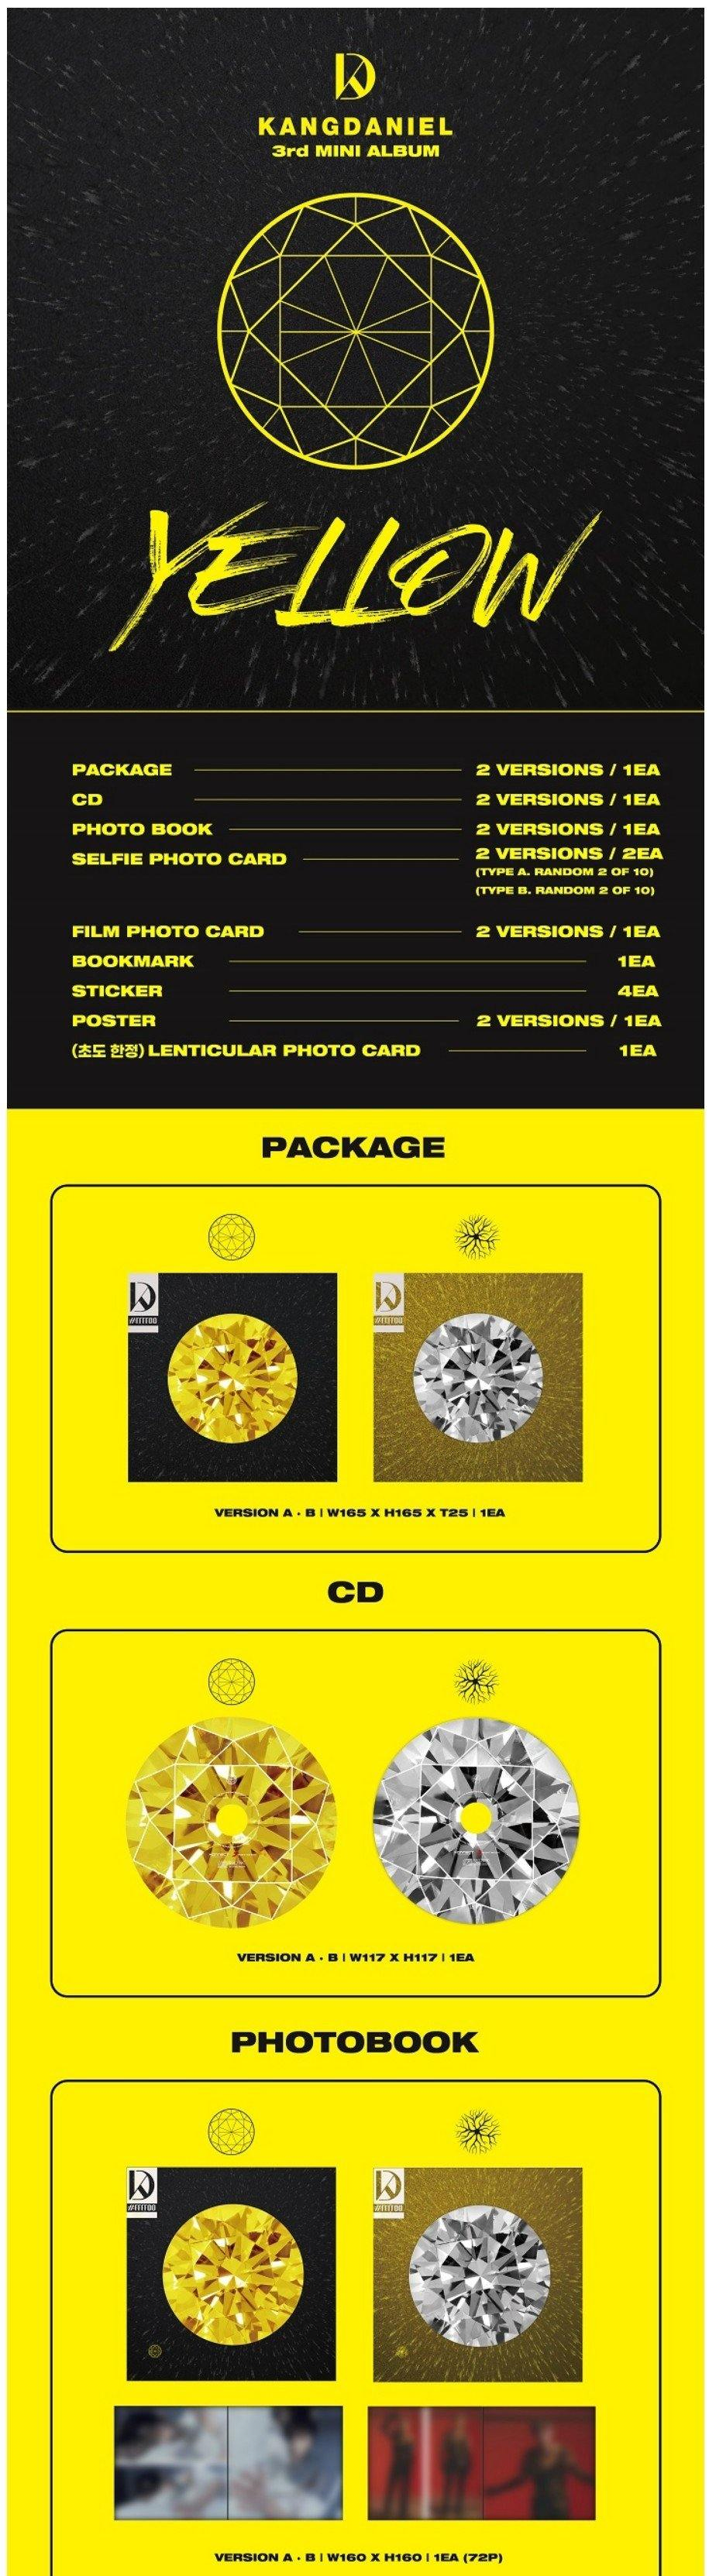 KANG DANIEL - YELLOW (3RD MINI ALBUM) - Pre-Order